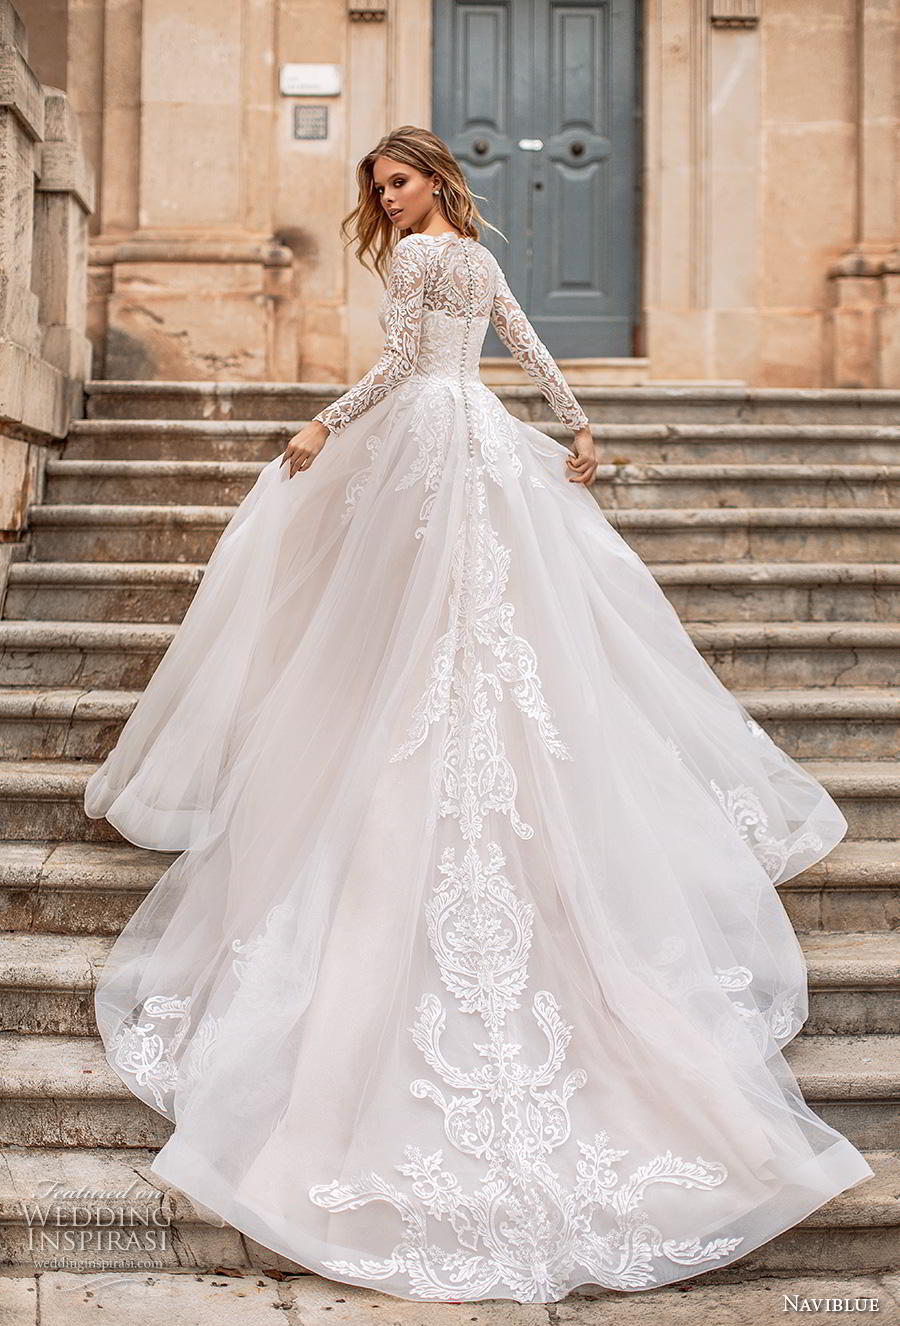 naviblue 2019 bridal long sleeves illusion bateau straight across neckline heavily embellished bodice romantic a line wedding dress covered lace back royal train (10) bv